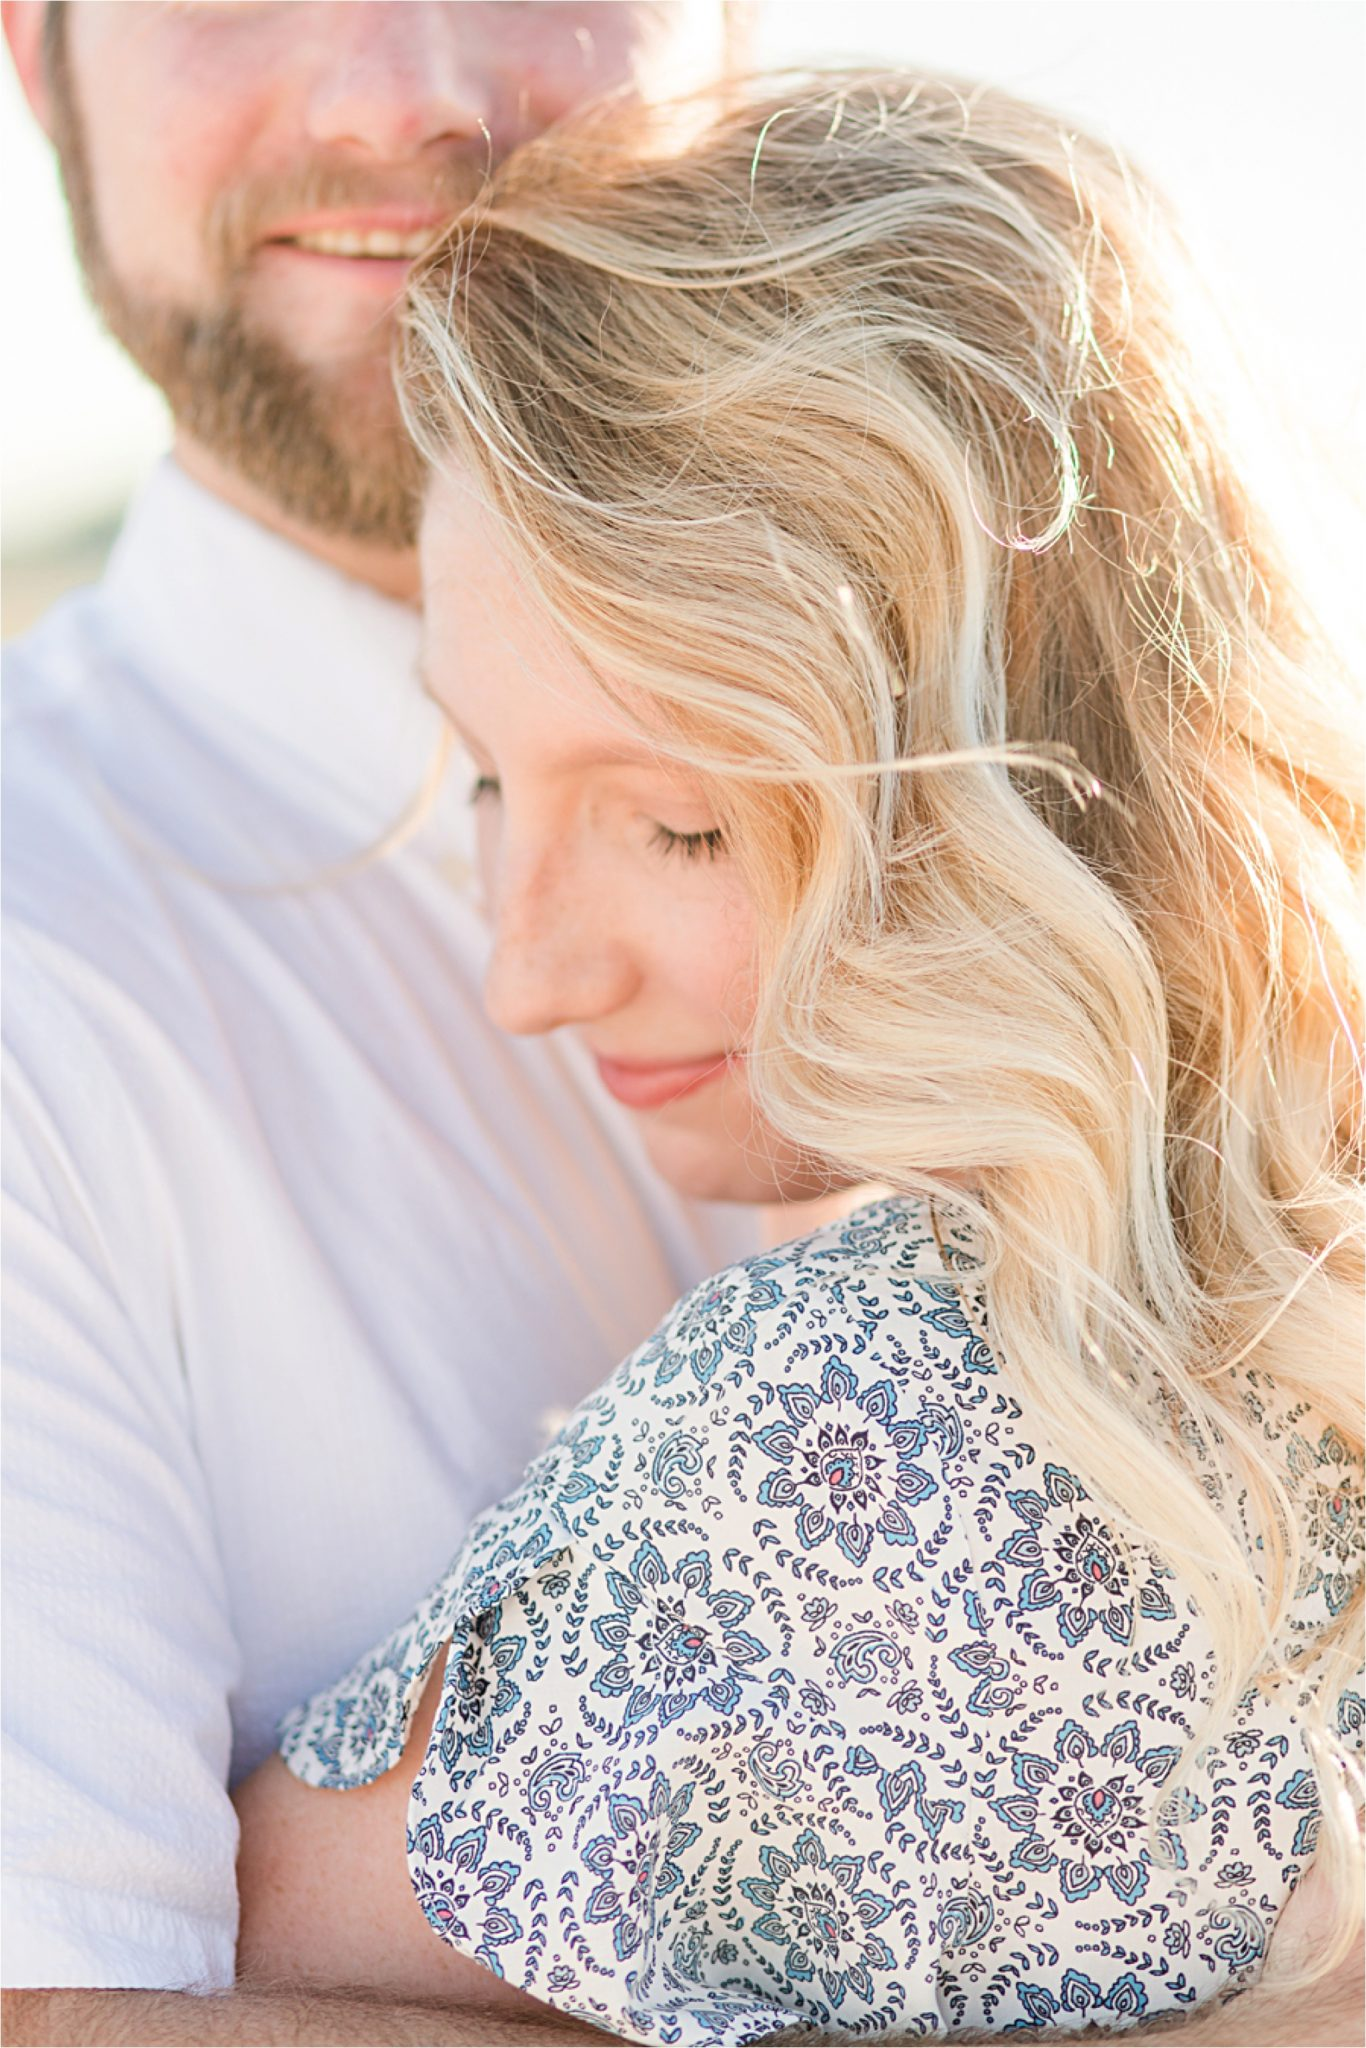 Beach engagement photos | Daulphin Island | Mobile wedding photographer | Candid romantic couples | Whimsical |